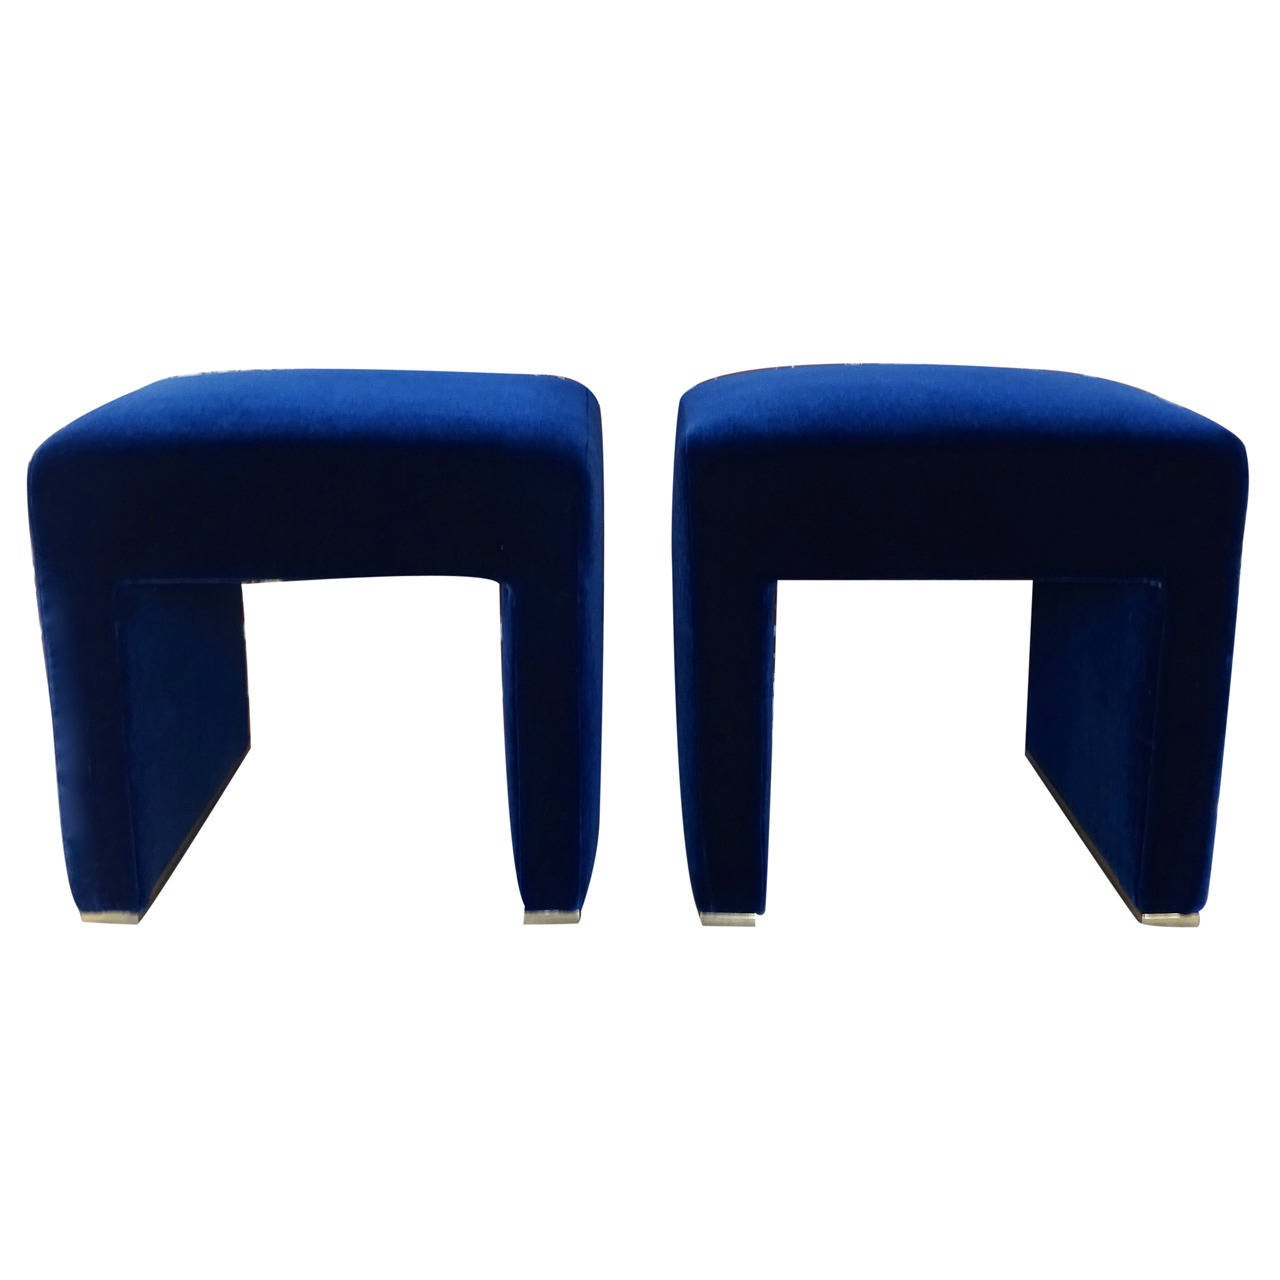 Sleek Pair Of 1970s Sapphire Mohair Covered Benches At 1stdibs